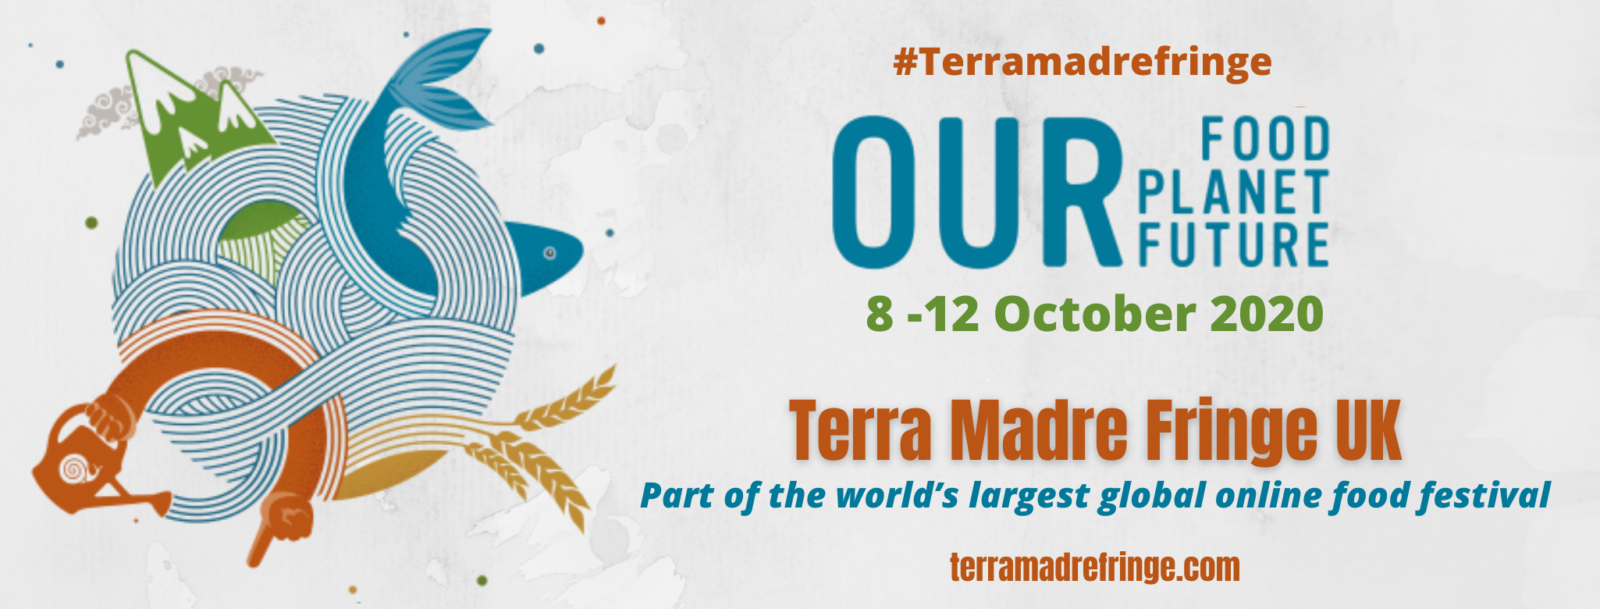 Terra Madre Fringe Events